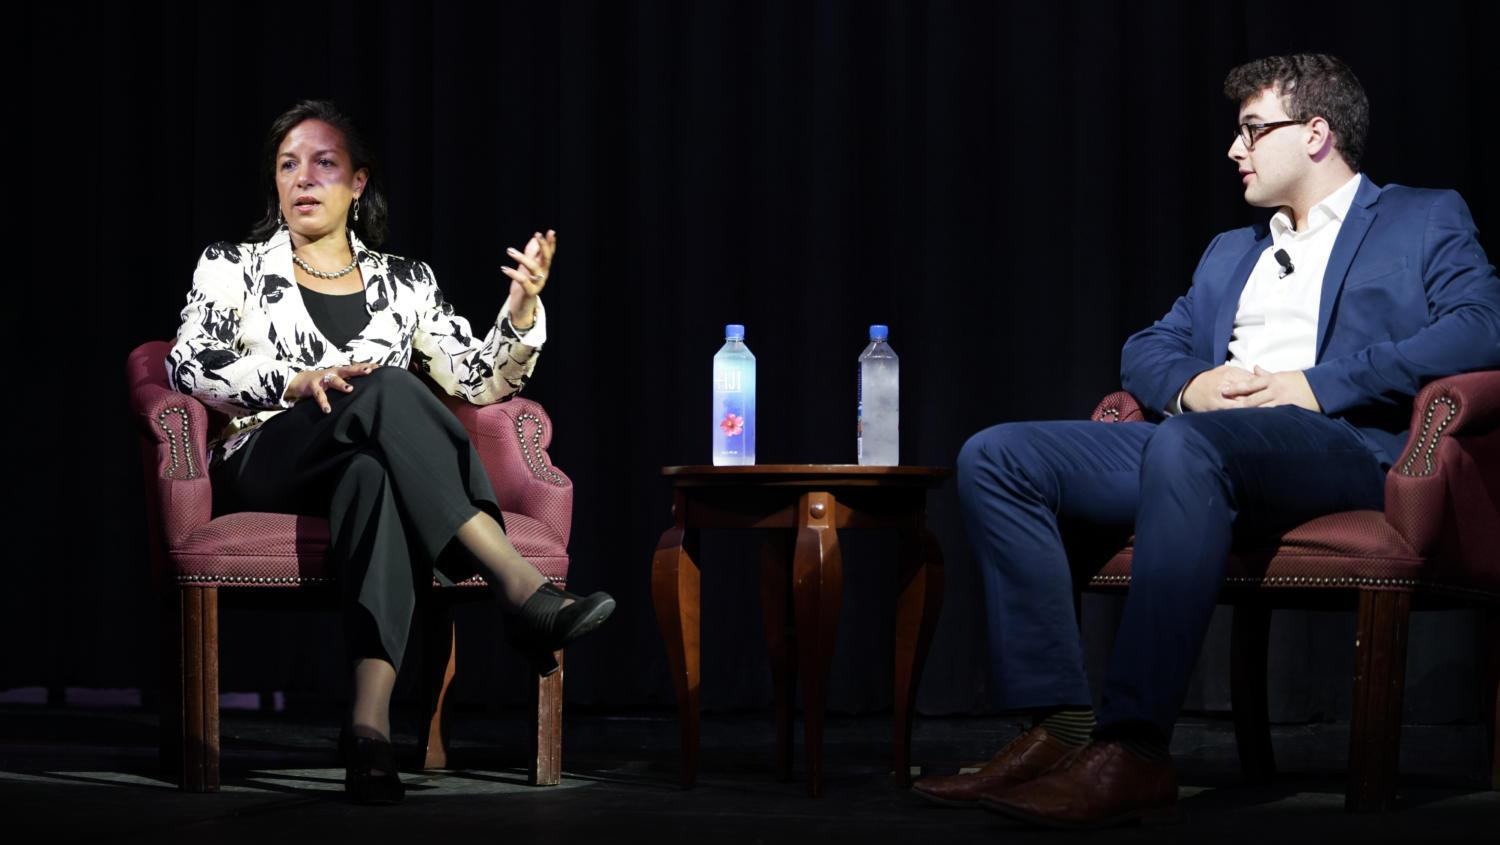 Susan Rice (Left), Former National Security Advisor and US Ambassador to the United Nations, participated in a moderated discussion in WPU Assembly Room on Thursday evening(Photo by Li Yi | Staff Photographer)